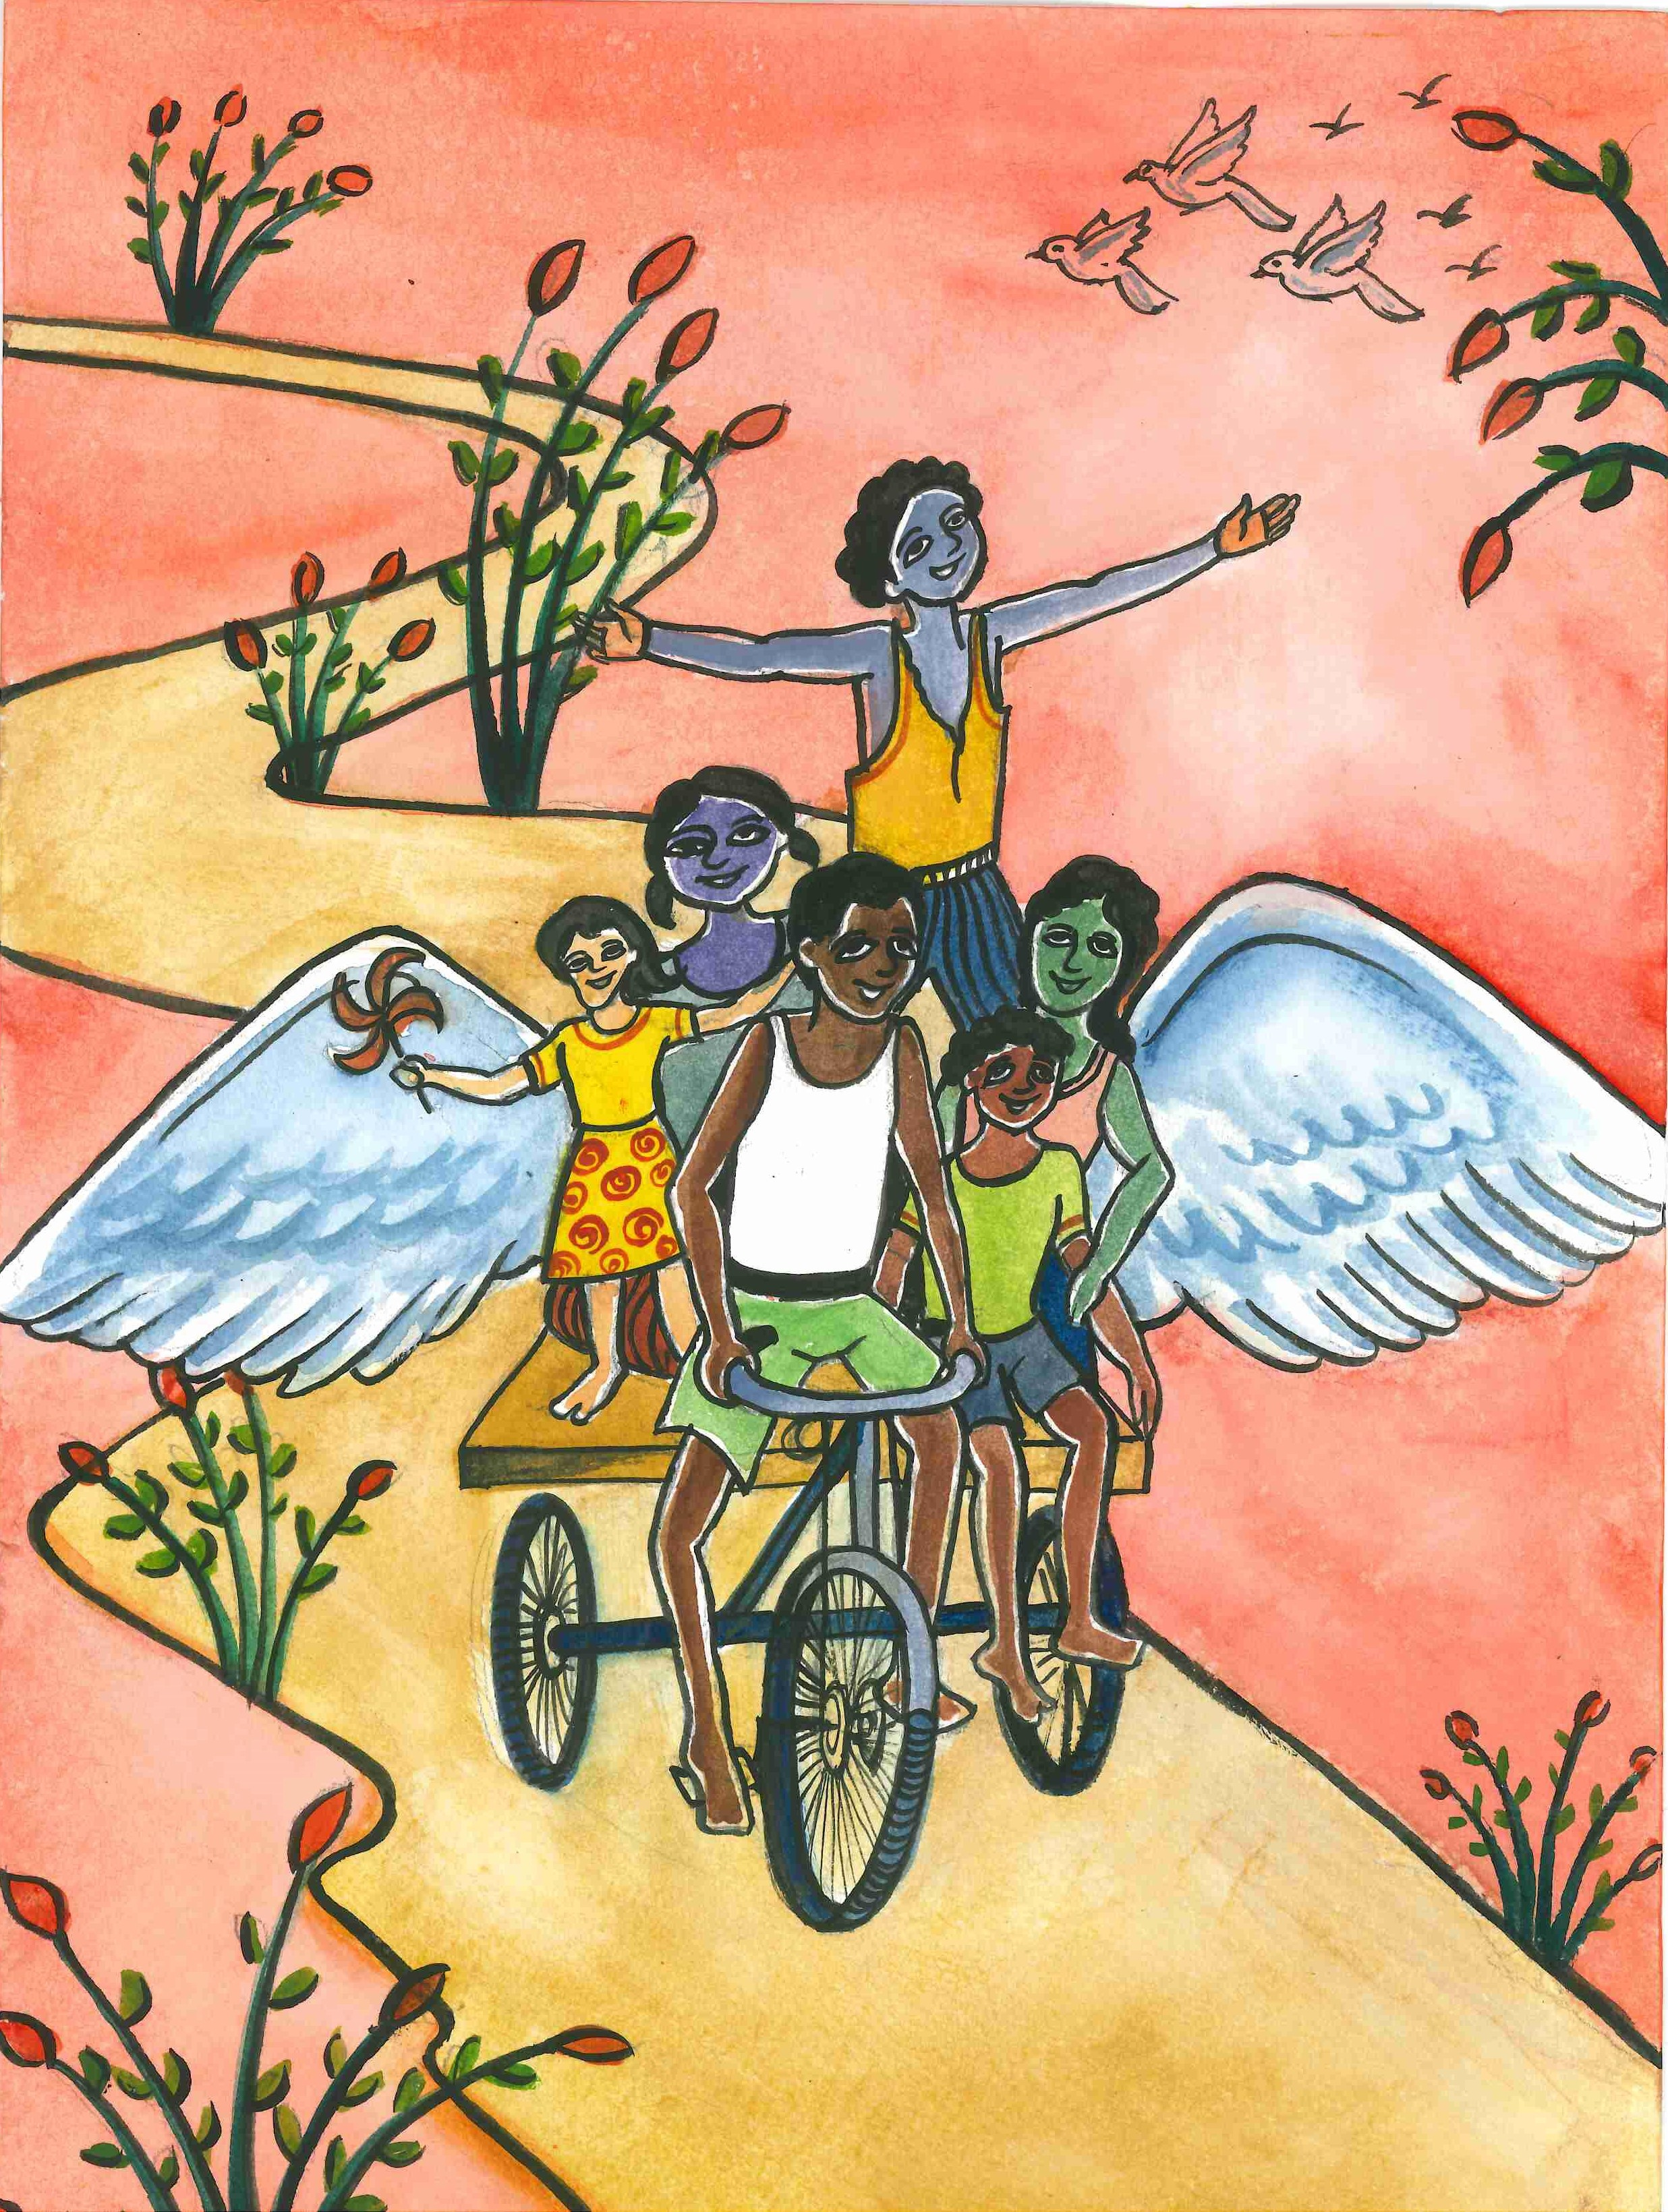 """Joy and enthusiasm of the children, which is the symbol of unity in diversity and that spirit brings the peace and happiness in the world. The wings of freedom have seemed to have arised to break free all the barriers.""  Neha Ray, age 17. Kolkata, West Bengal, India.  2016-2017 Art Finalist"